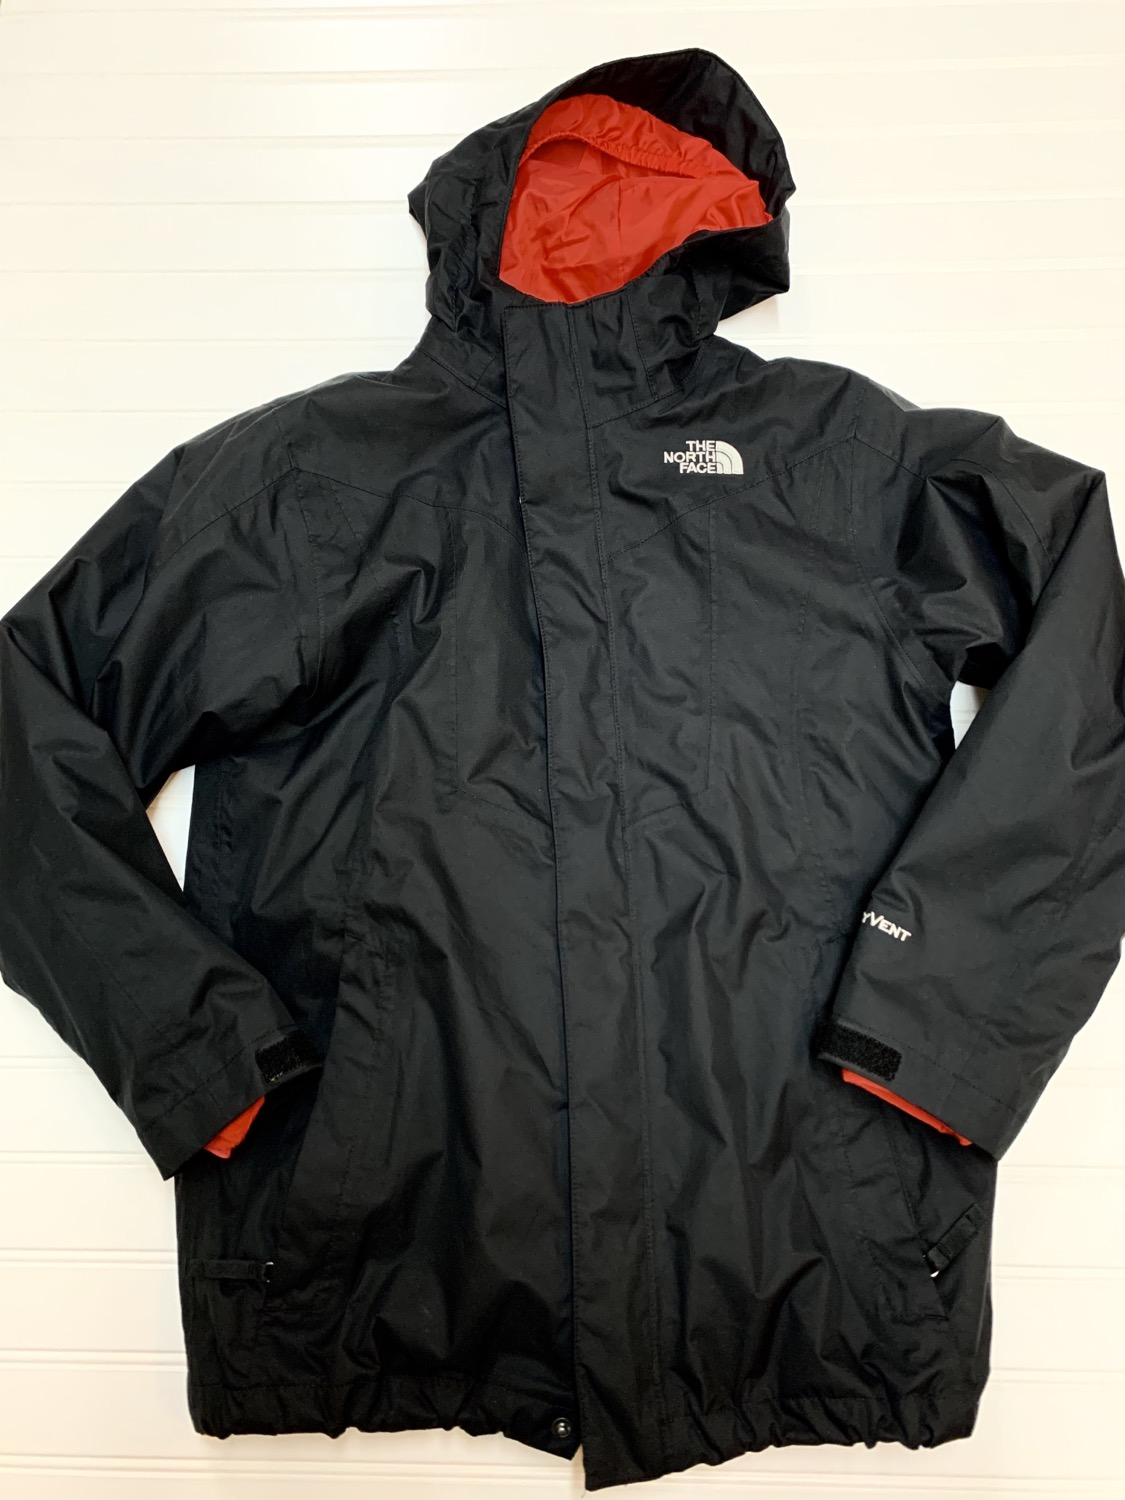 NorthFace 2 in 1 Size 10/12